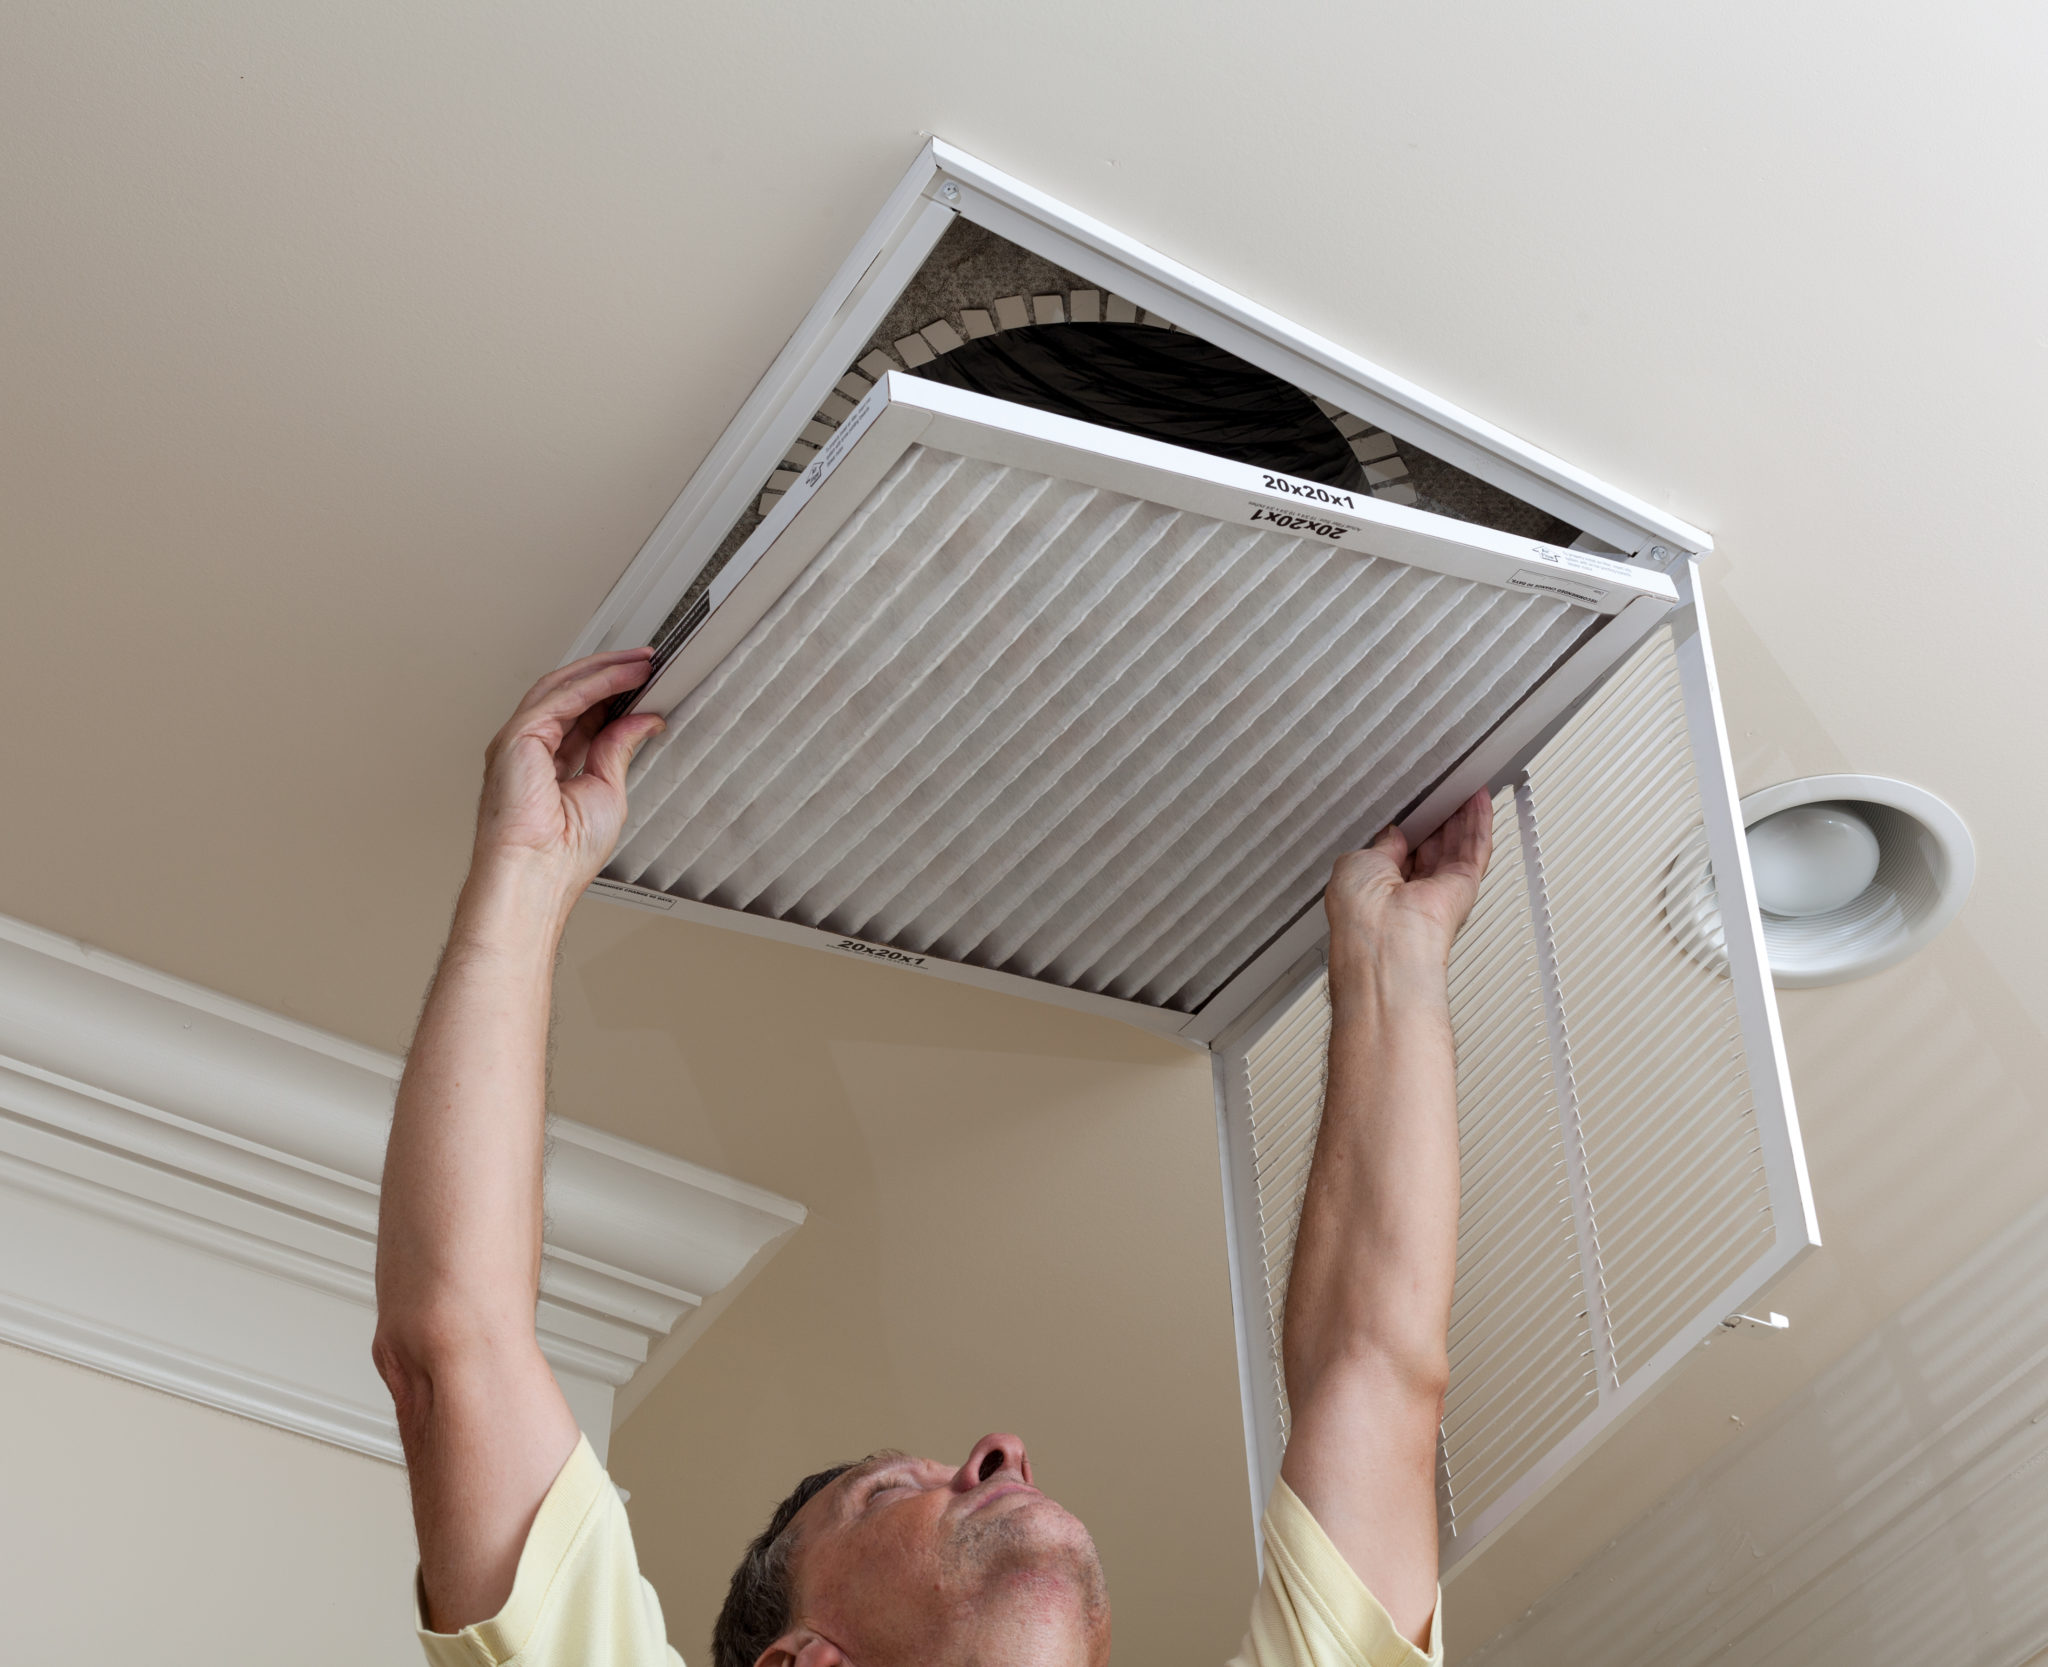 Choosing The Right Air Filter For Your Furnace